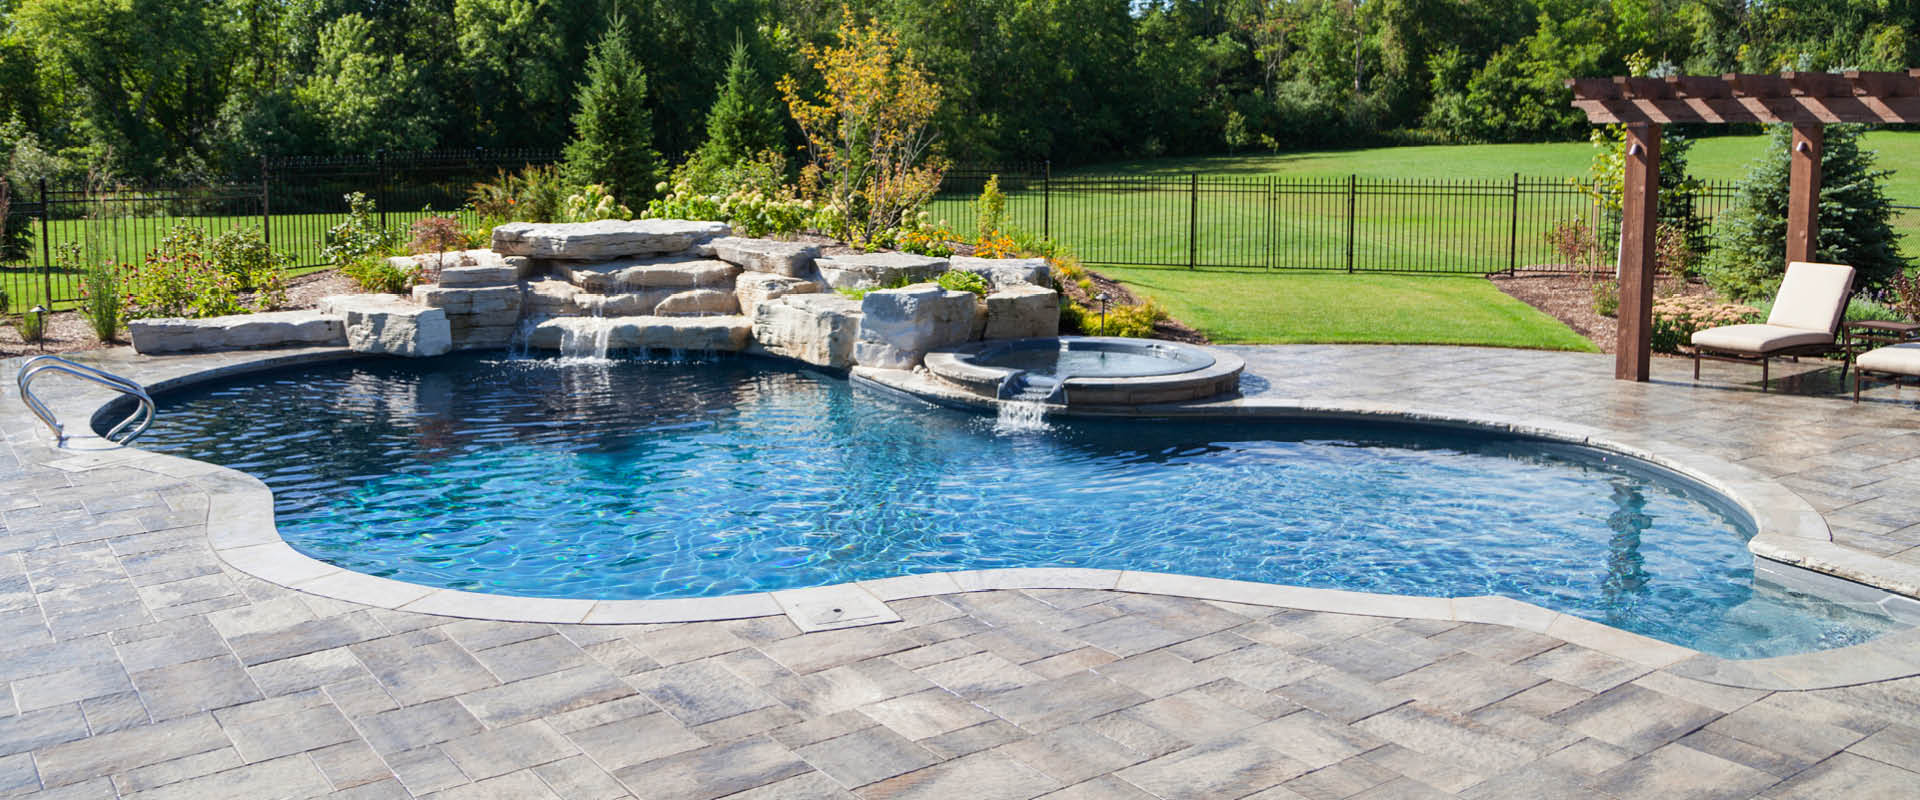 Swimming Pool Vinyl Liners Pioneer Family Pools